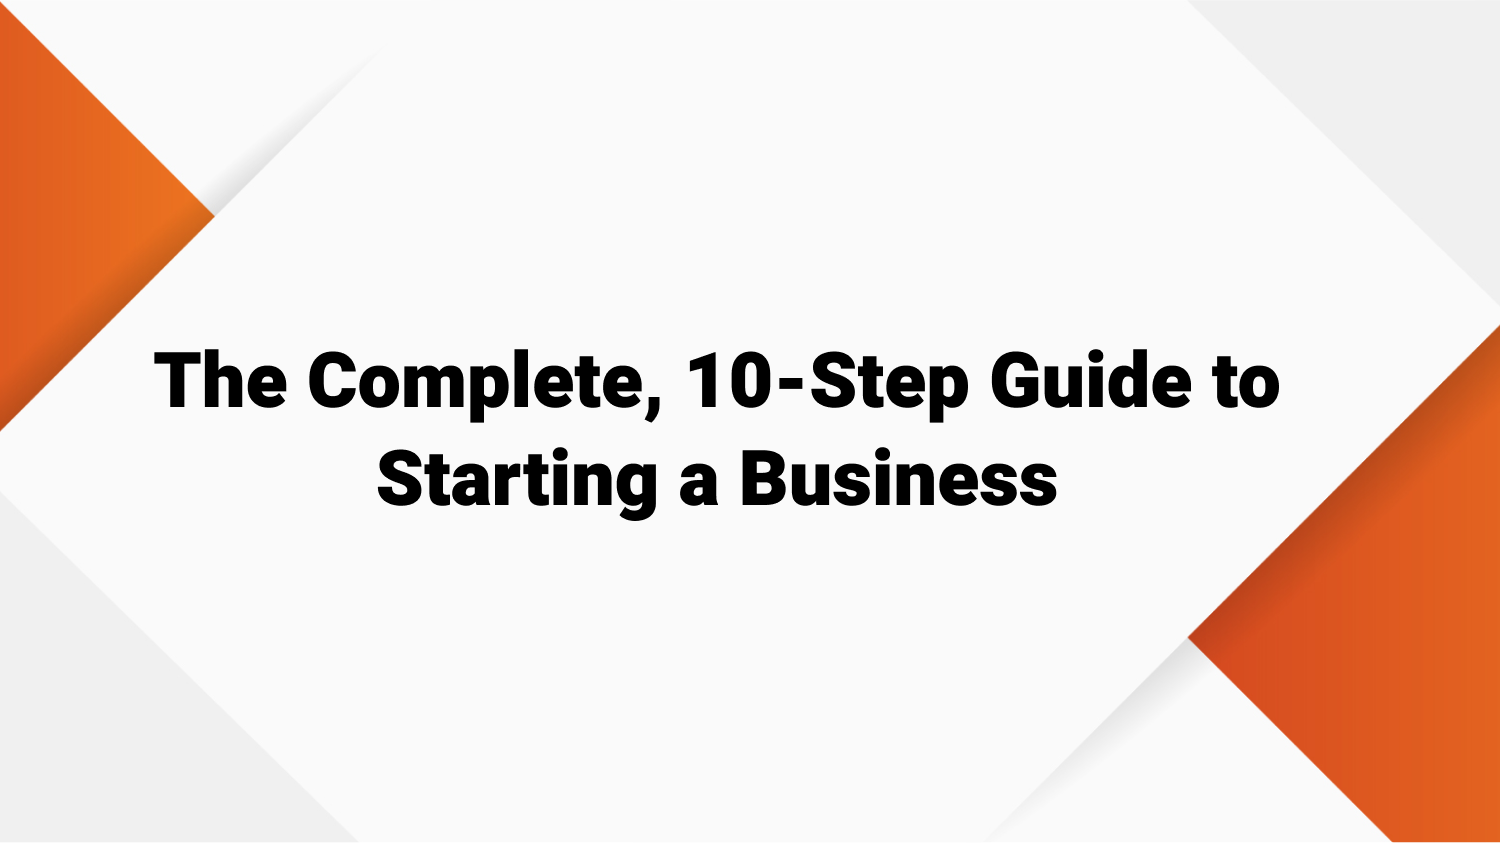 The Complete, 10-Step Guide to Starting a Business